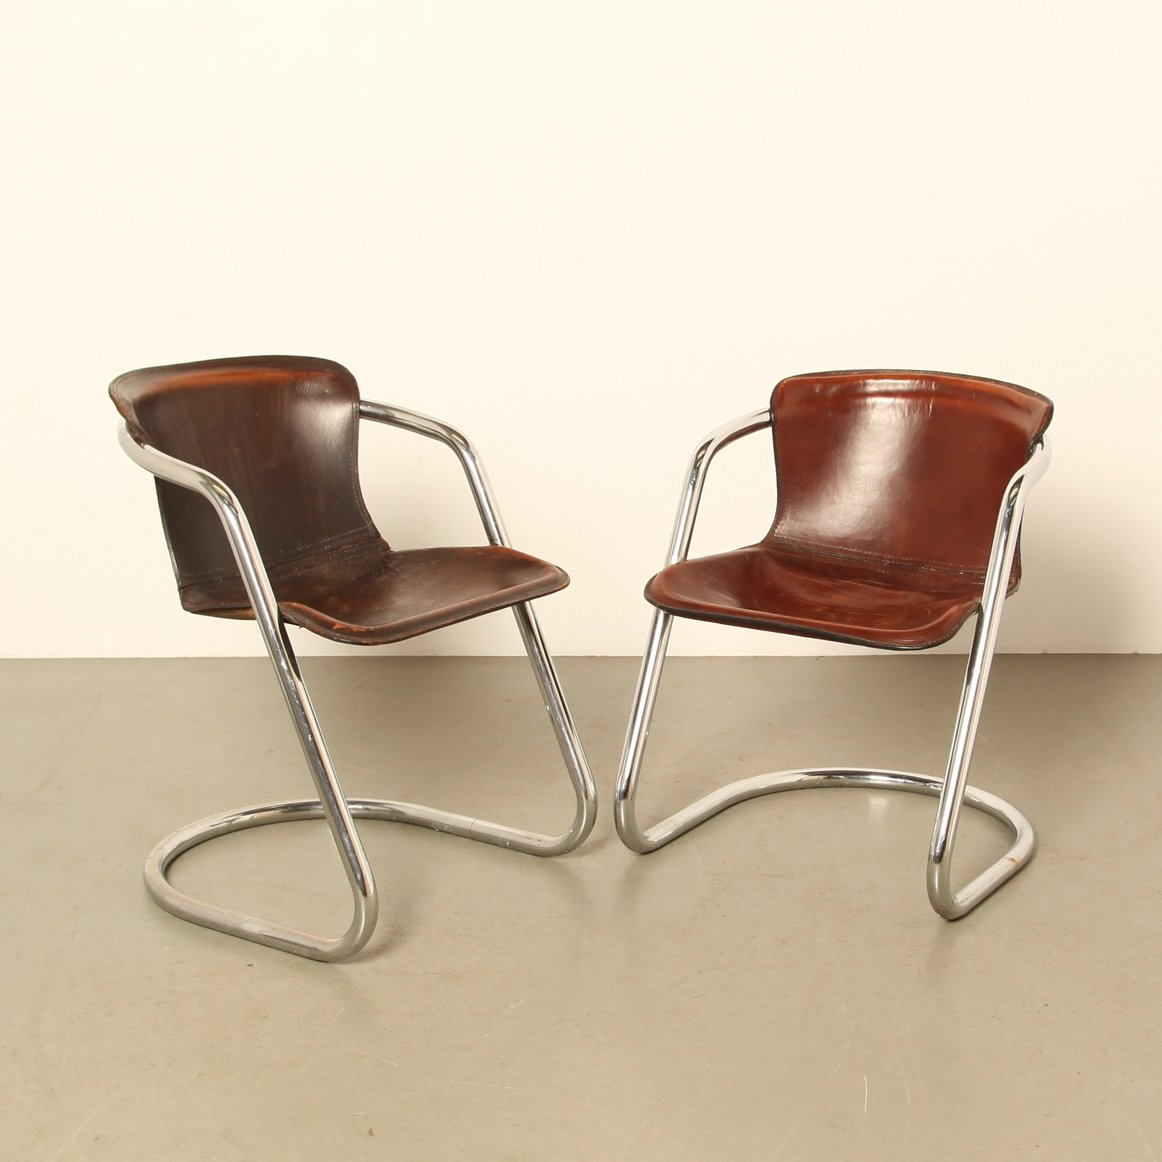 Set Of 2 Tubular Chrome Dining Room Chairs By Willy Rizzo For Cidue